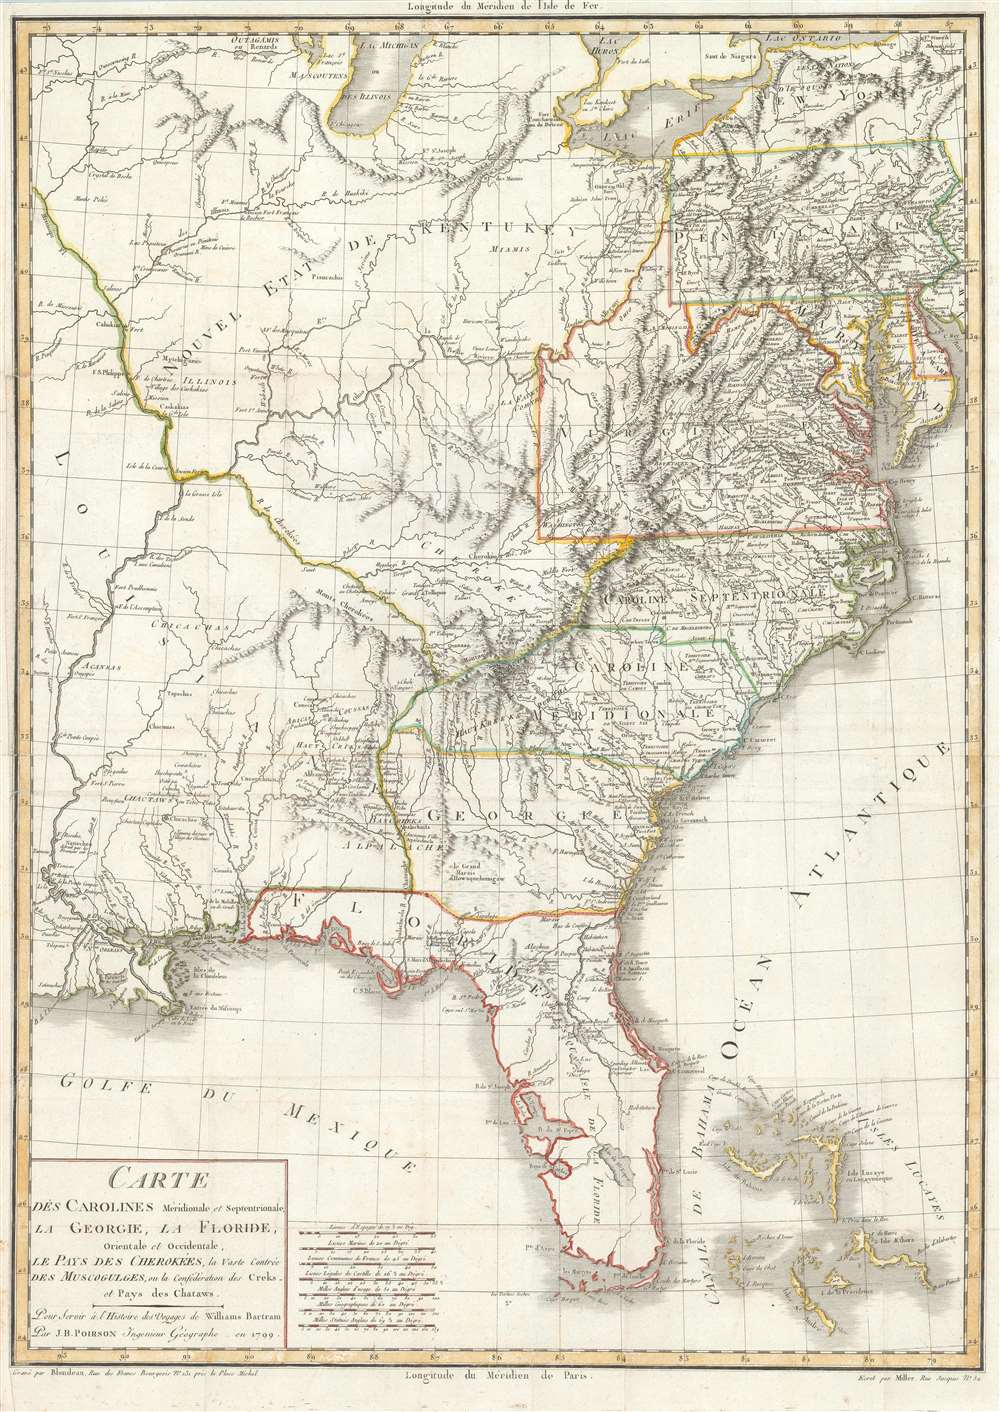 1799 Poirson Map of the United States